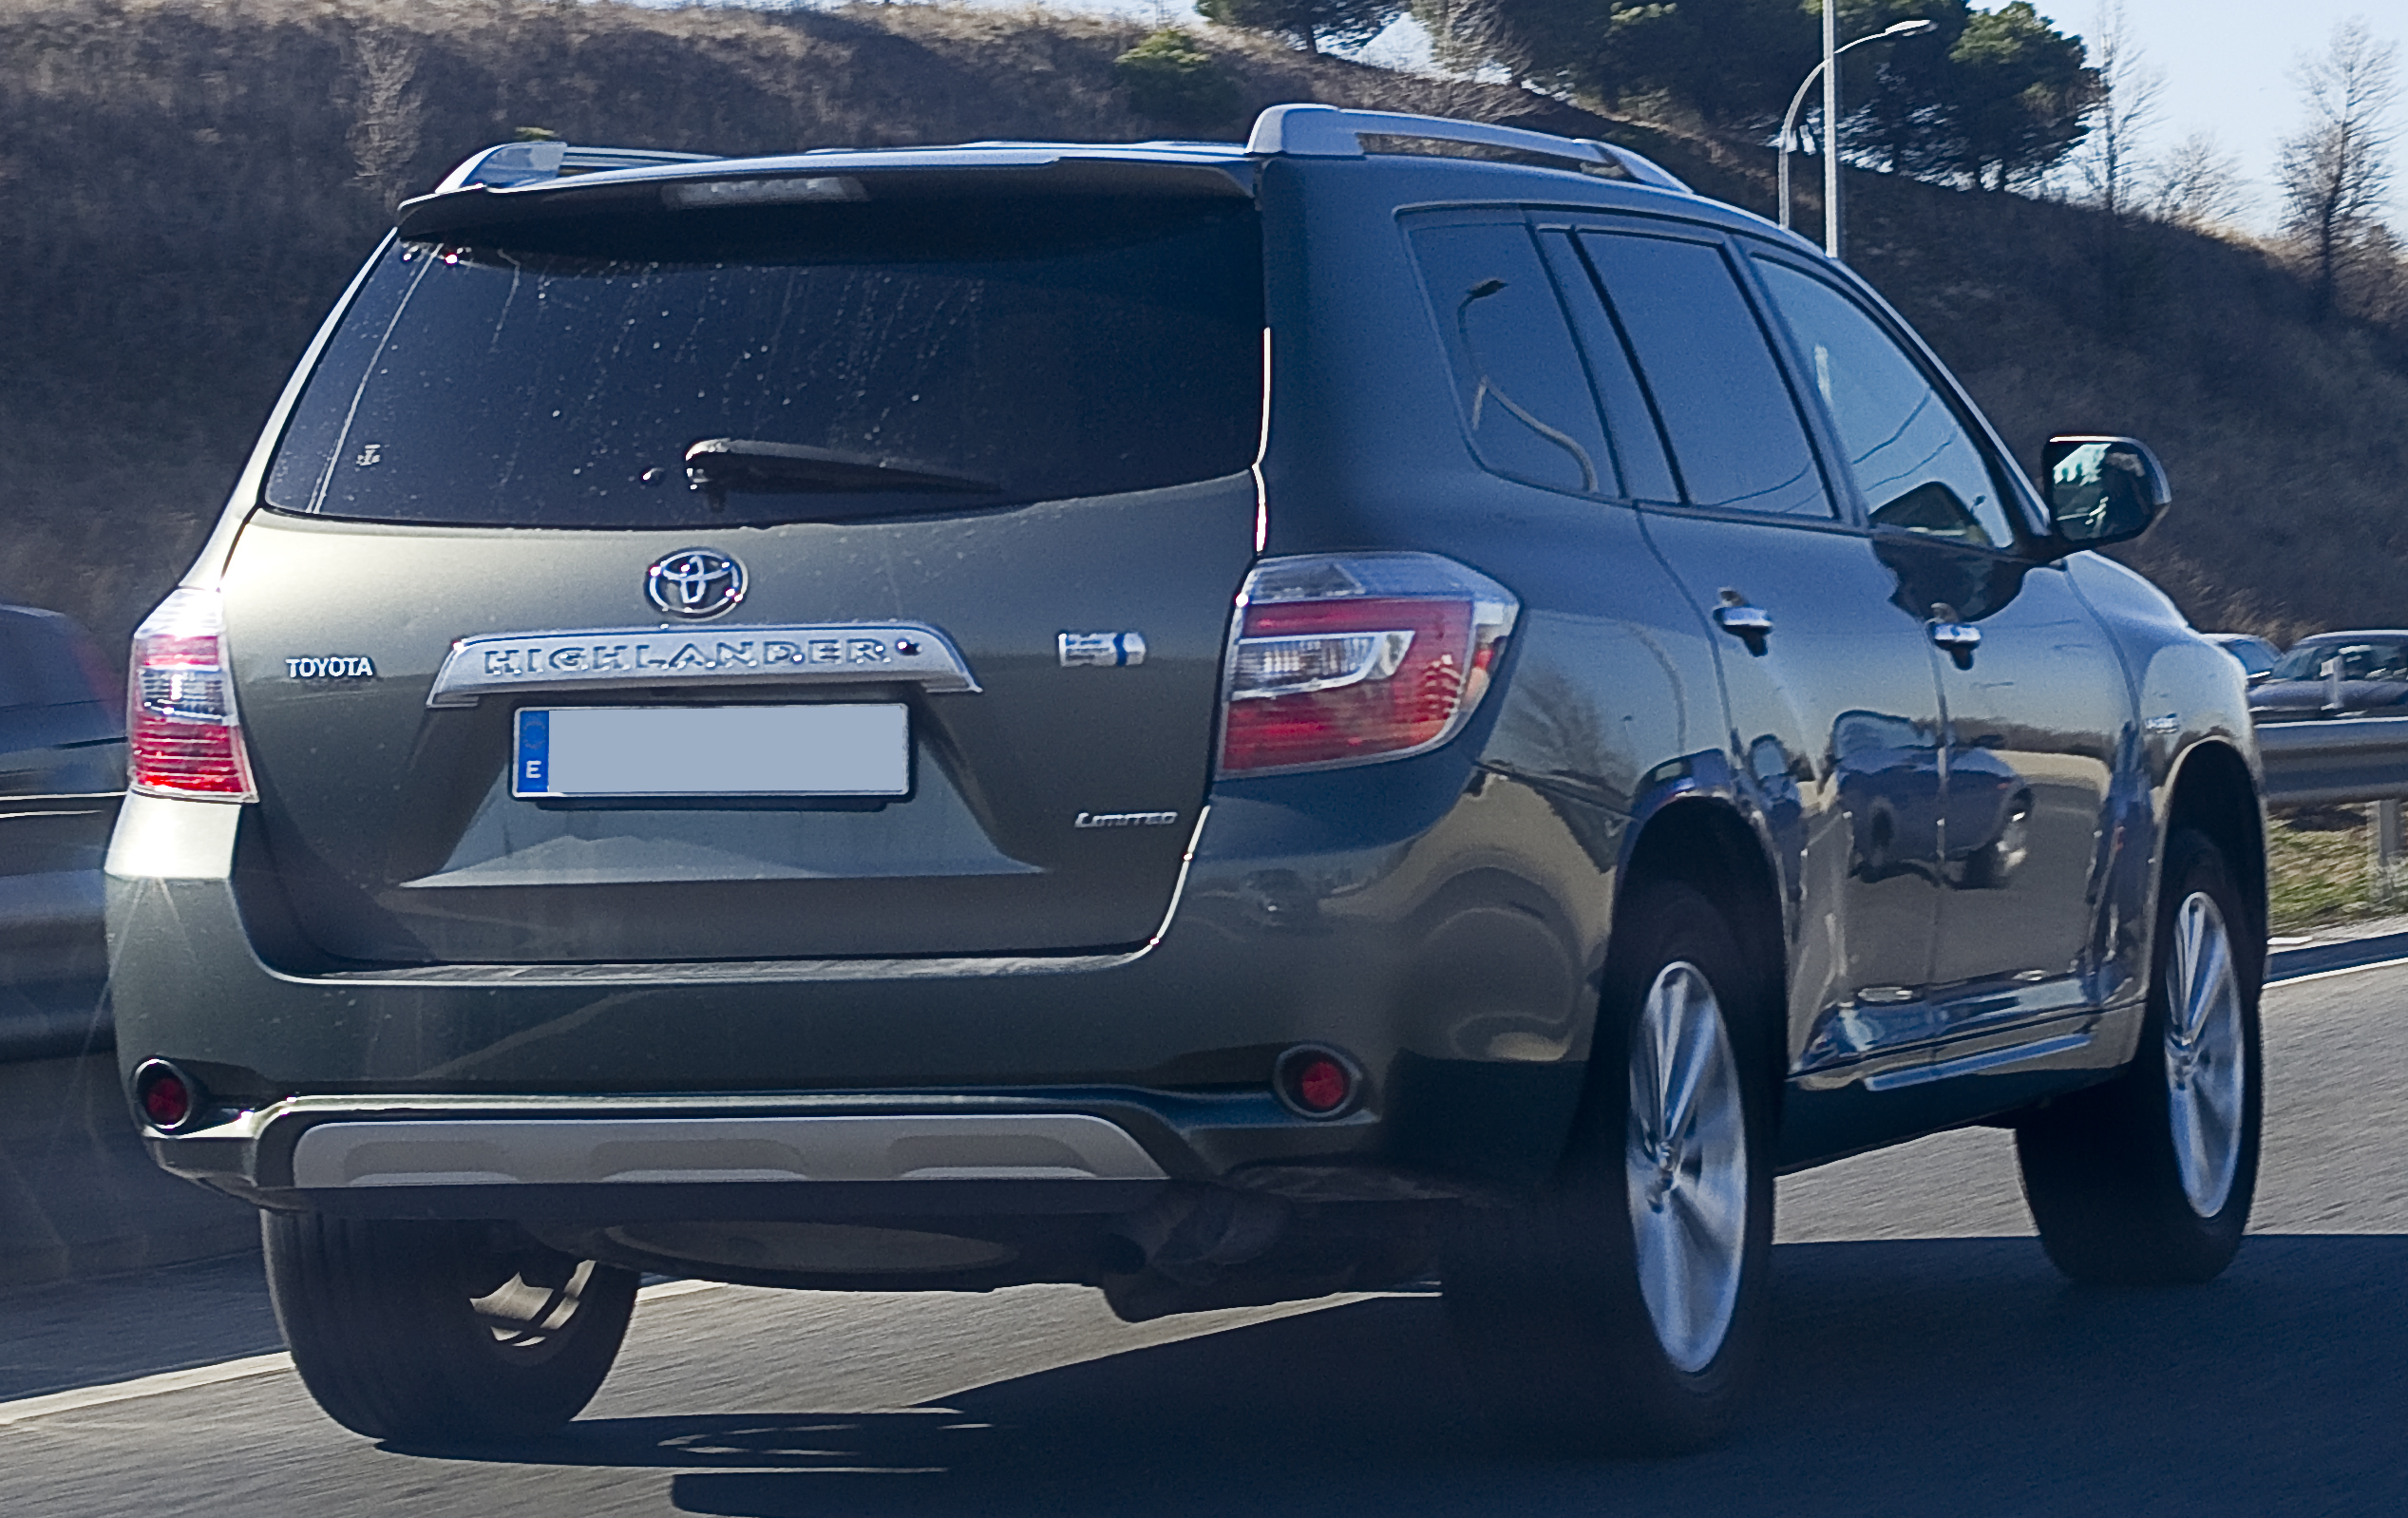 Charming Pre Facelift Toyota Highlander Hybrid Limited (Spain)